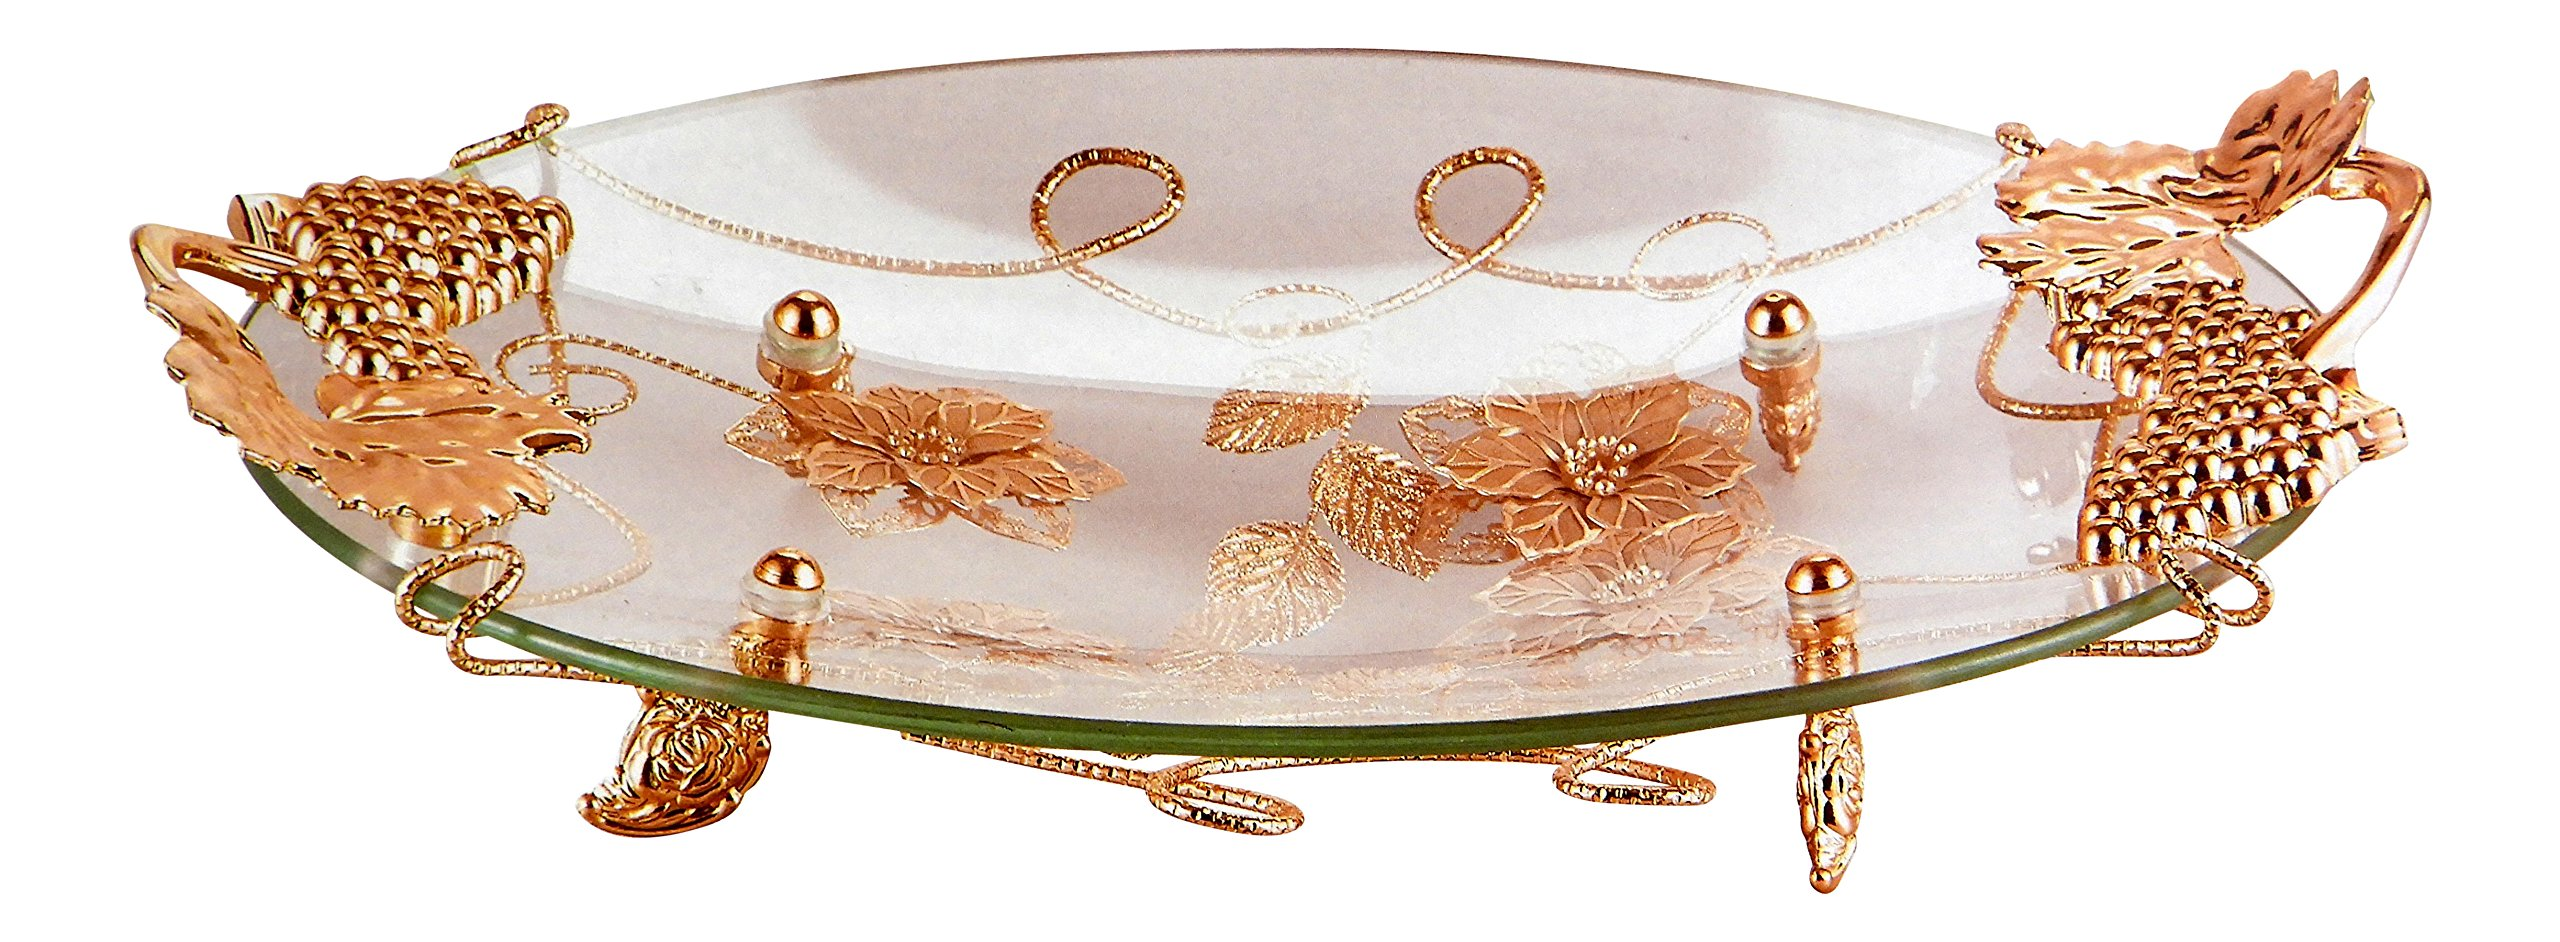 DINY Home & Style Decorative Glass Centerpiece Dish With Gold Leaf Metal Stand